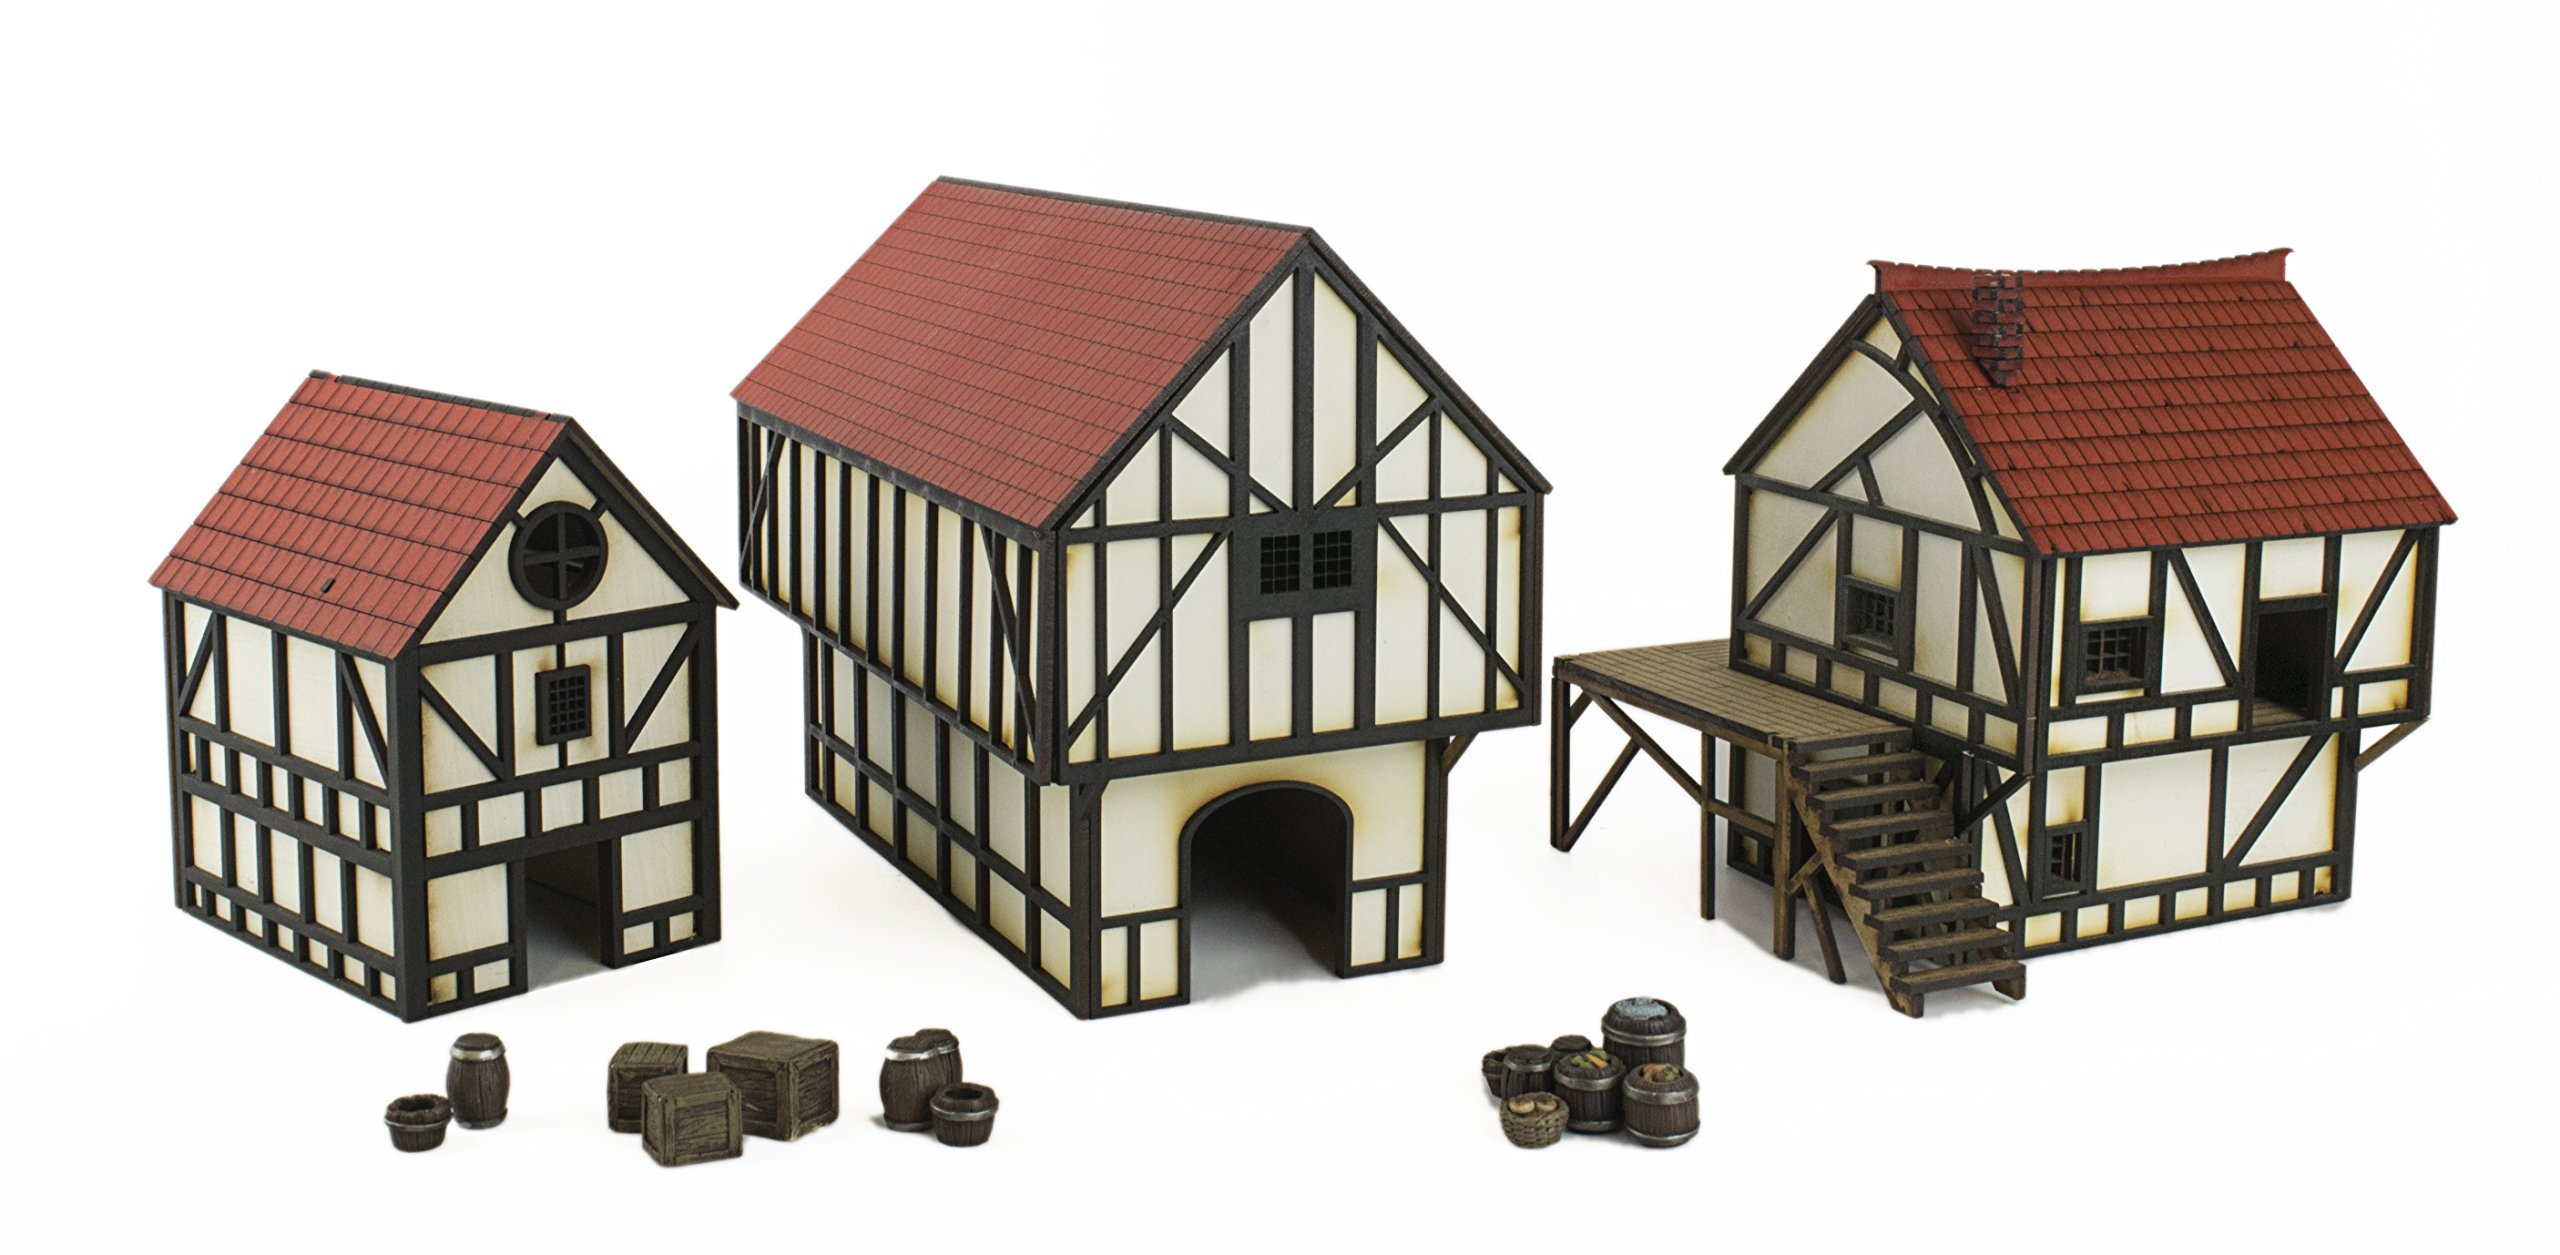 WWG Medieval Town Cottage, Townhouse & Barn Set with Resin Accessories – 28mm/Heroic Fantasy Wargaming Terrain